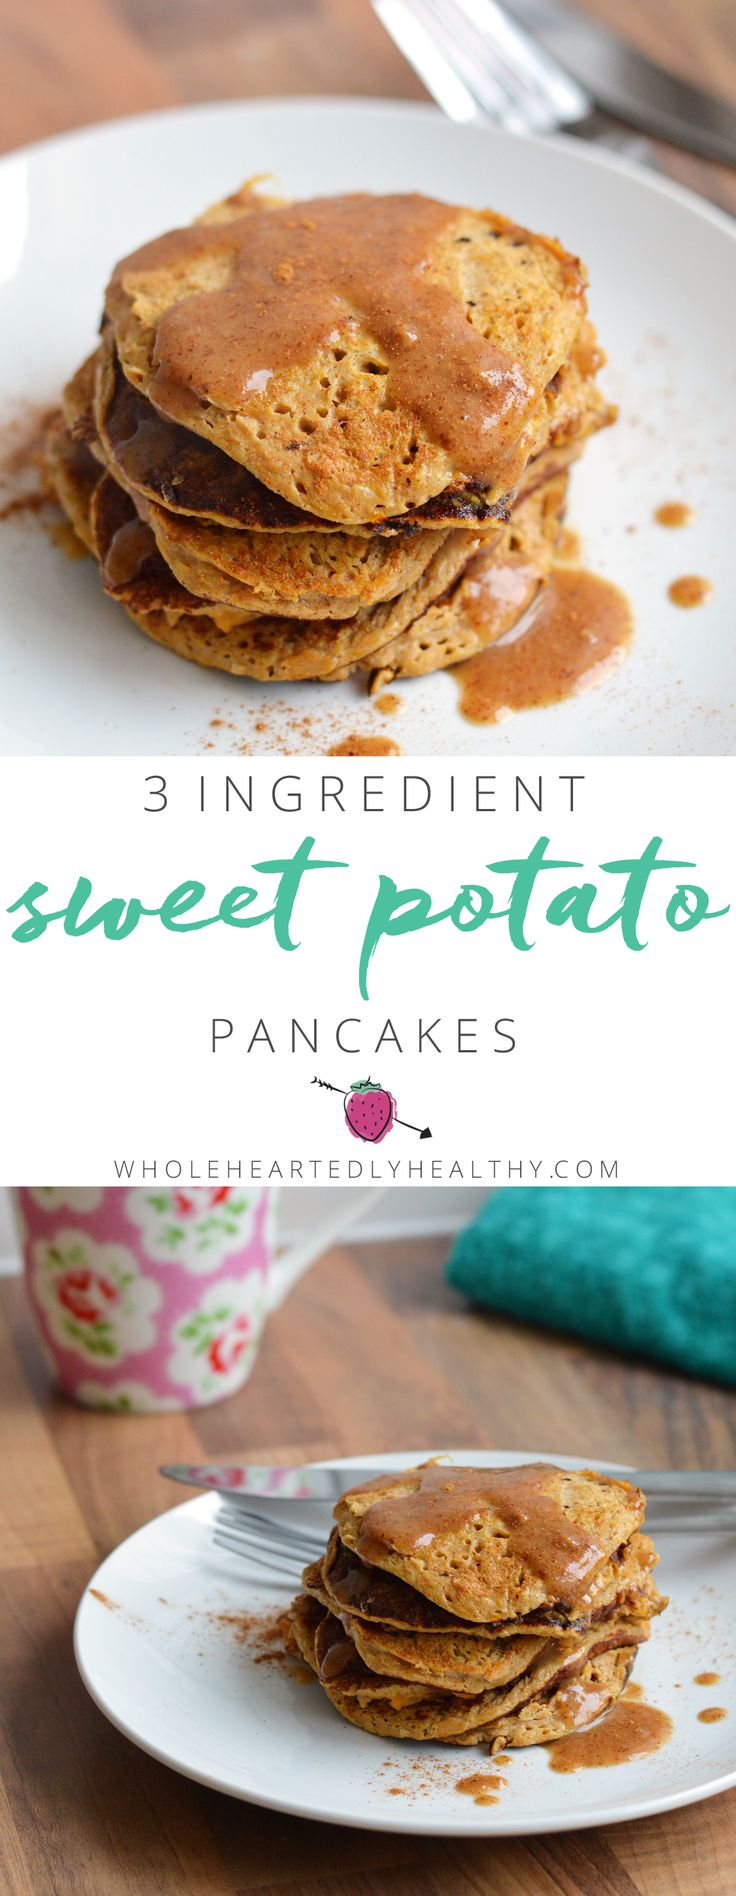 3 Ingredient Sweet Potato Pancakes - healthy pancakes that are gluten free, dairy free and paleo! Wholeheartedly Healthy | UK Healthy Living and Lifestyle Blog